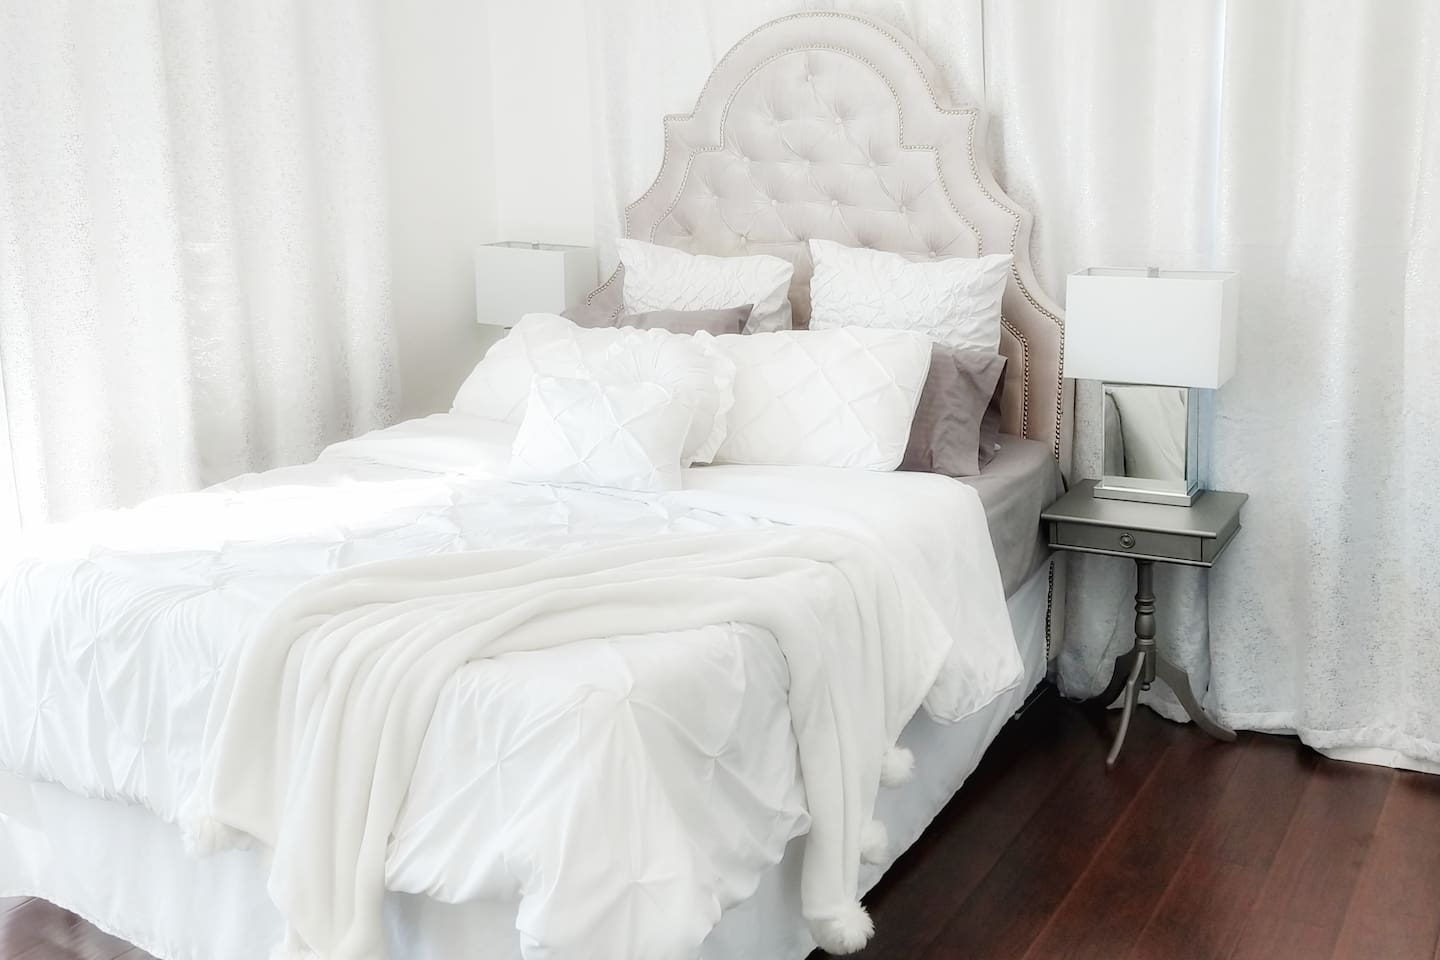 Snuggle up in your cozy, queen bed!